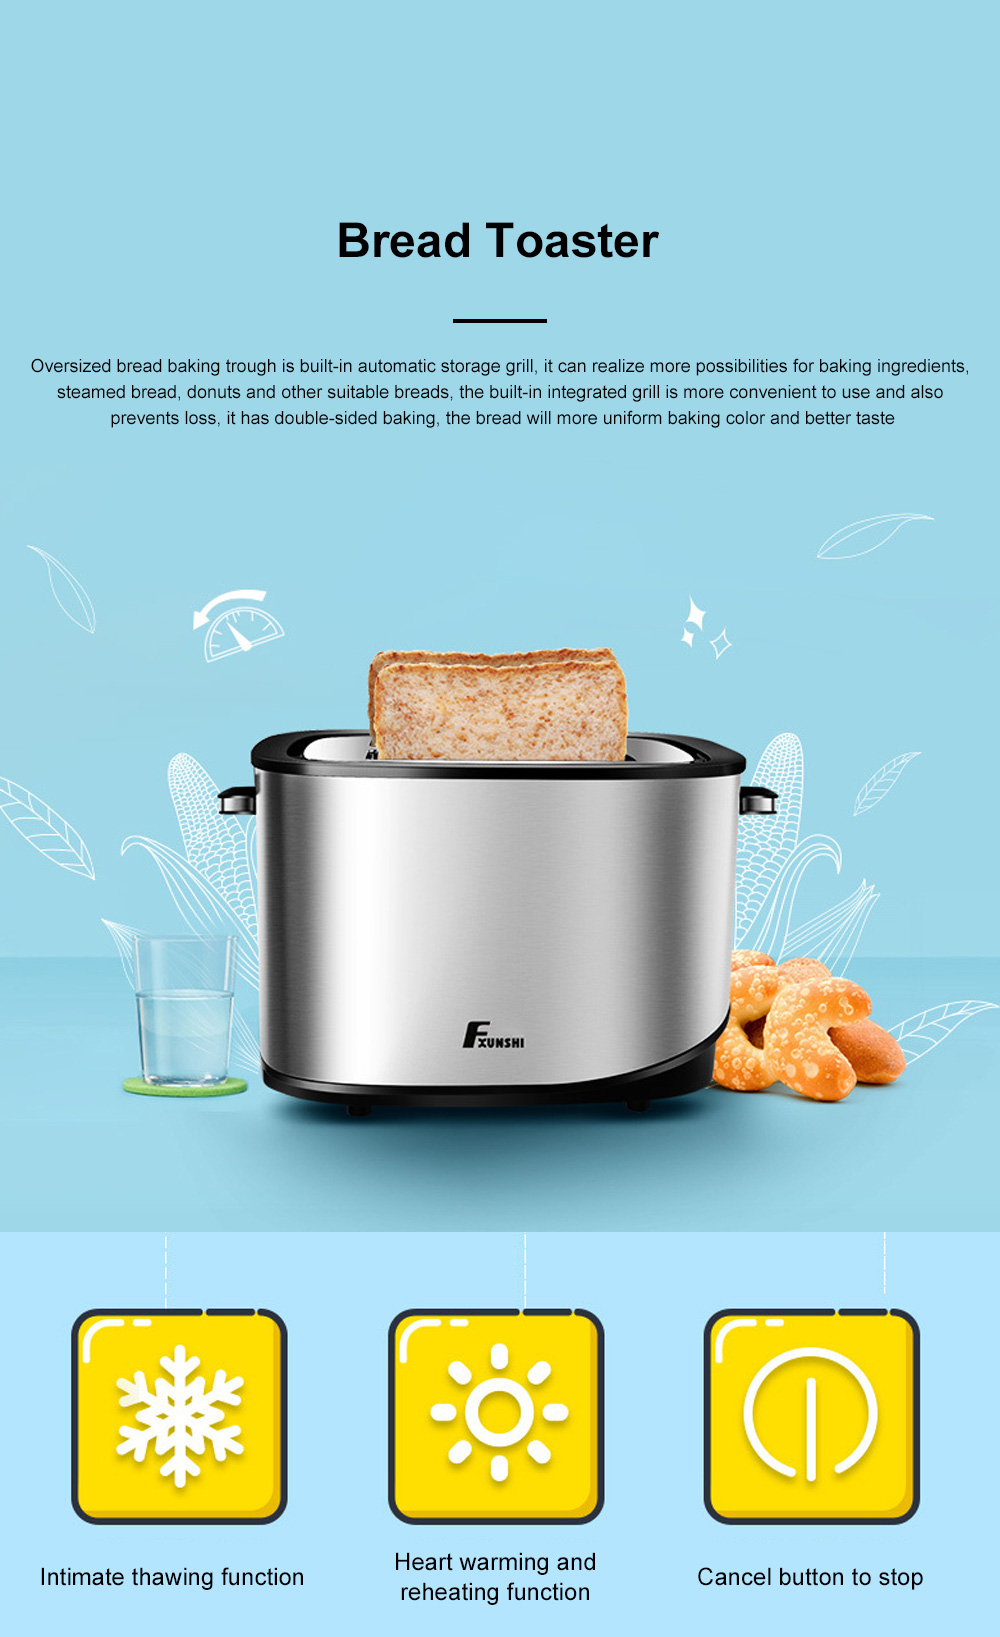 Fxunshi 800W Power Home Appliance Stainless Steel Auto Switch Off 2 Slices 2 Slot Portable Automatic Bread Maker Toaster 0